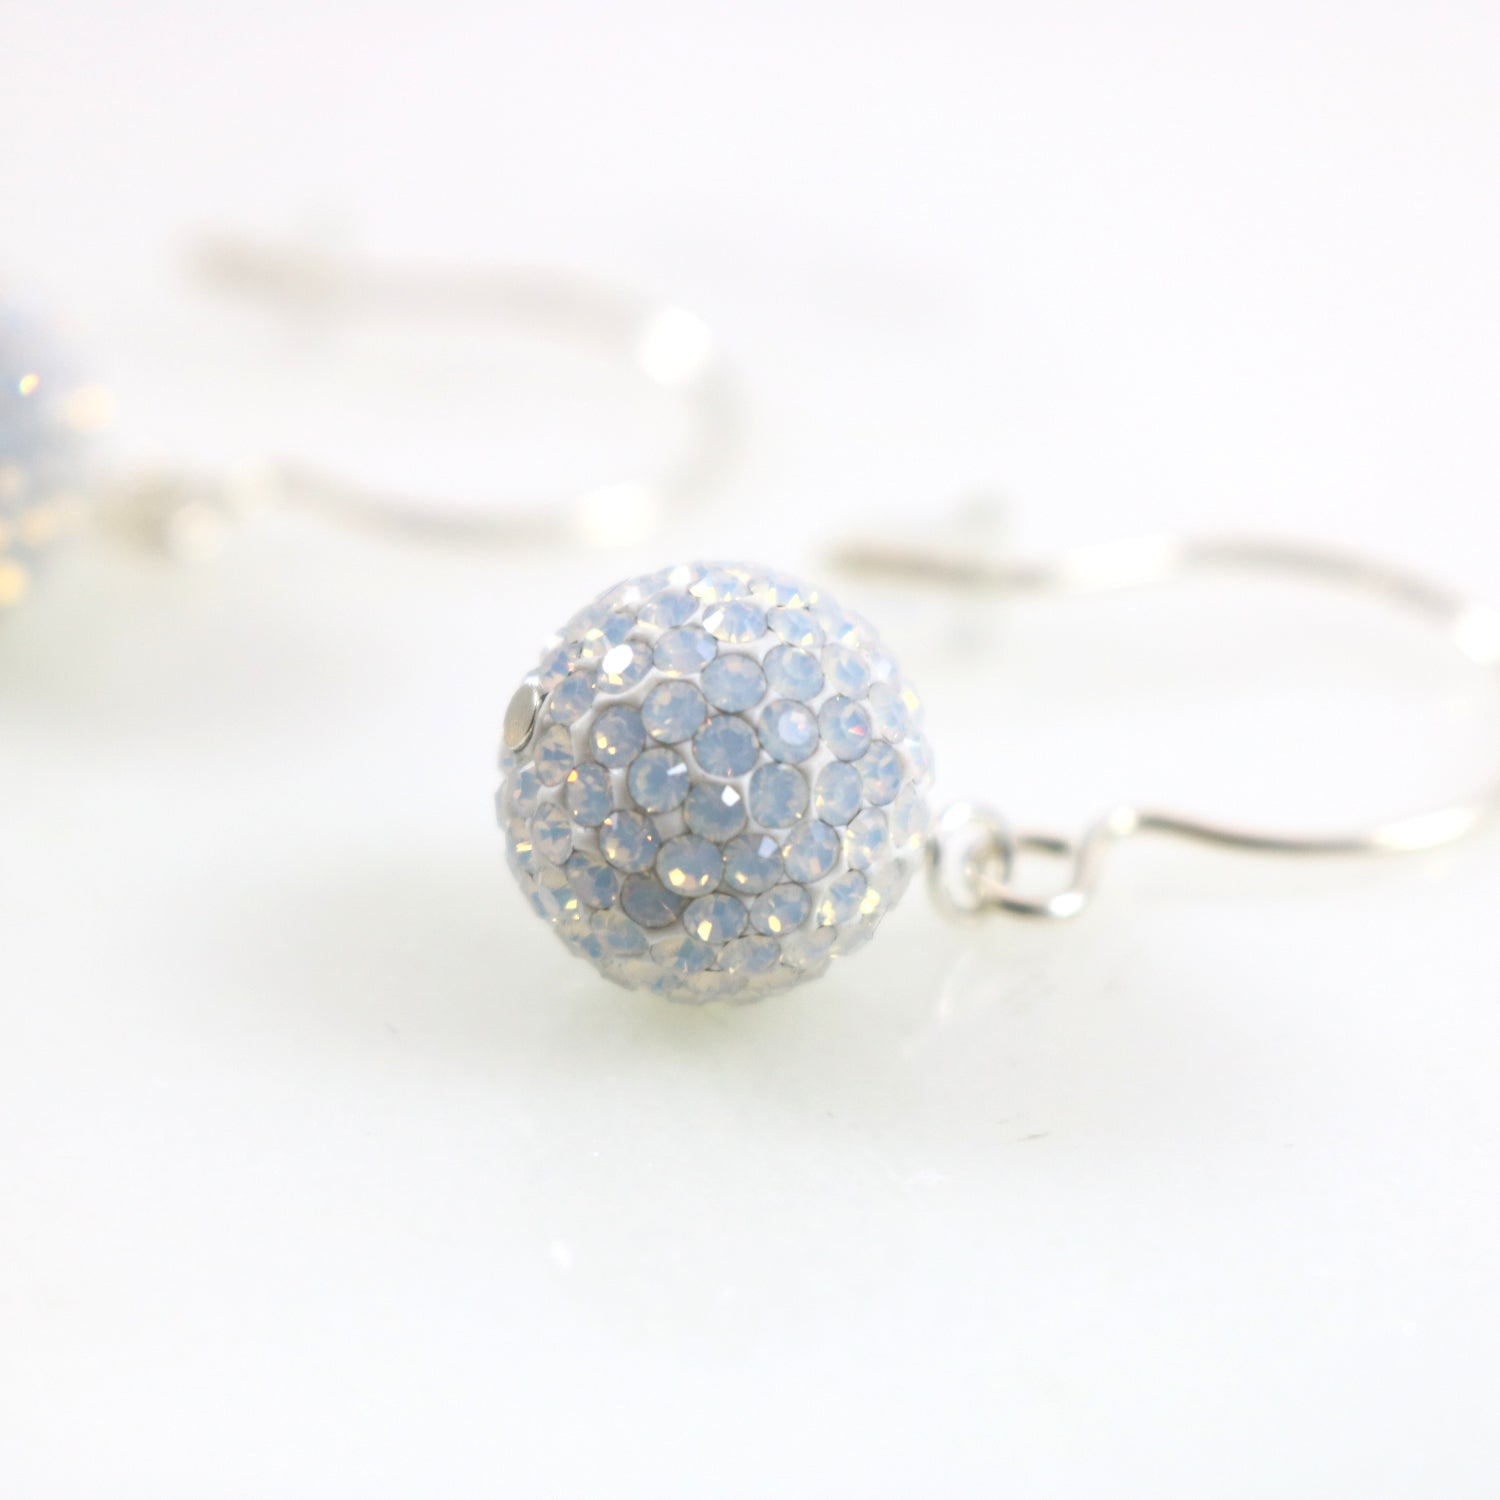 12mm Drop Earrings